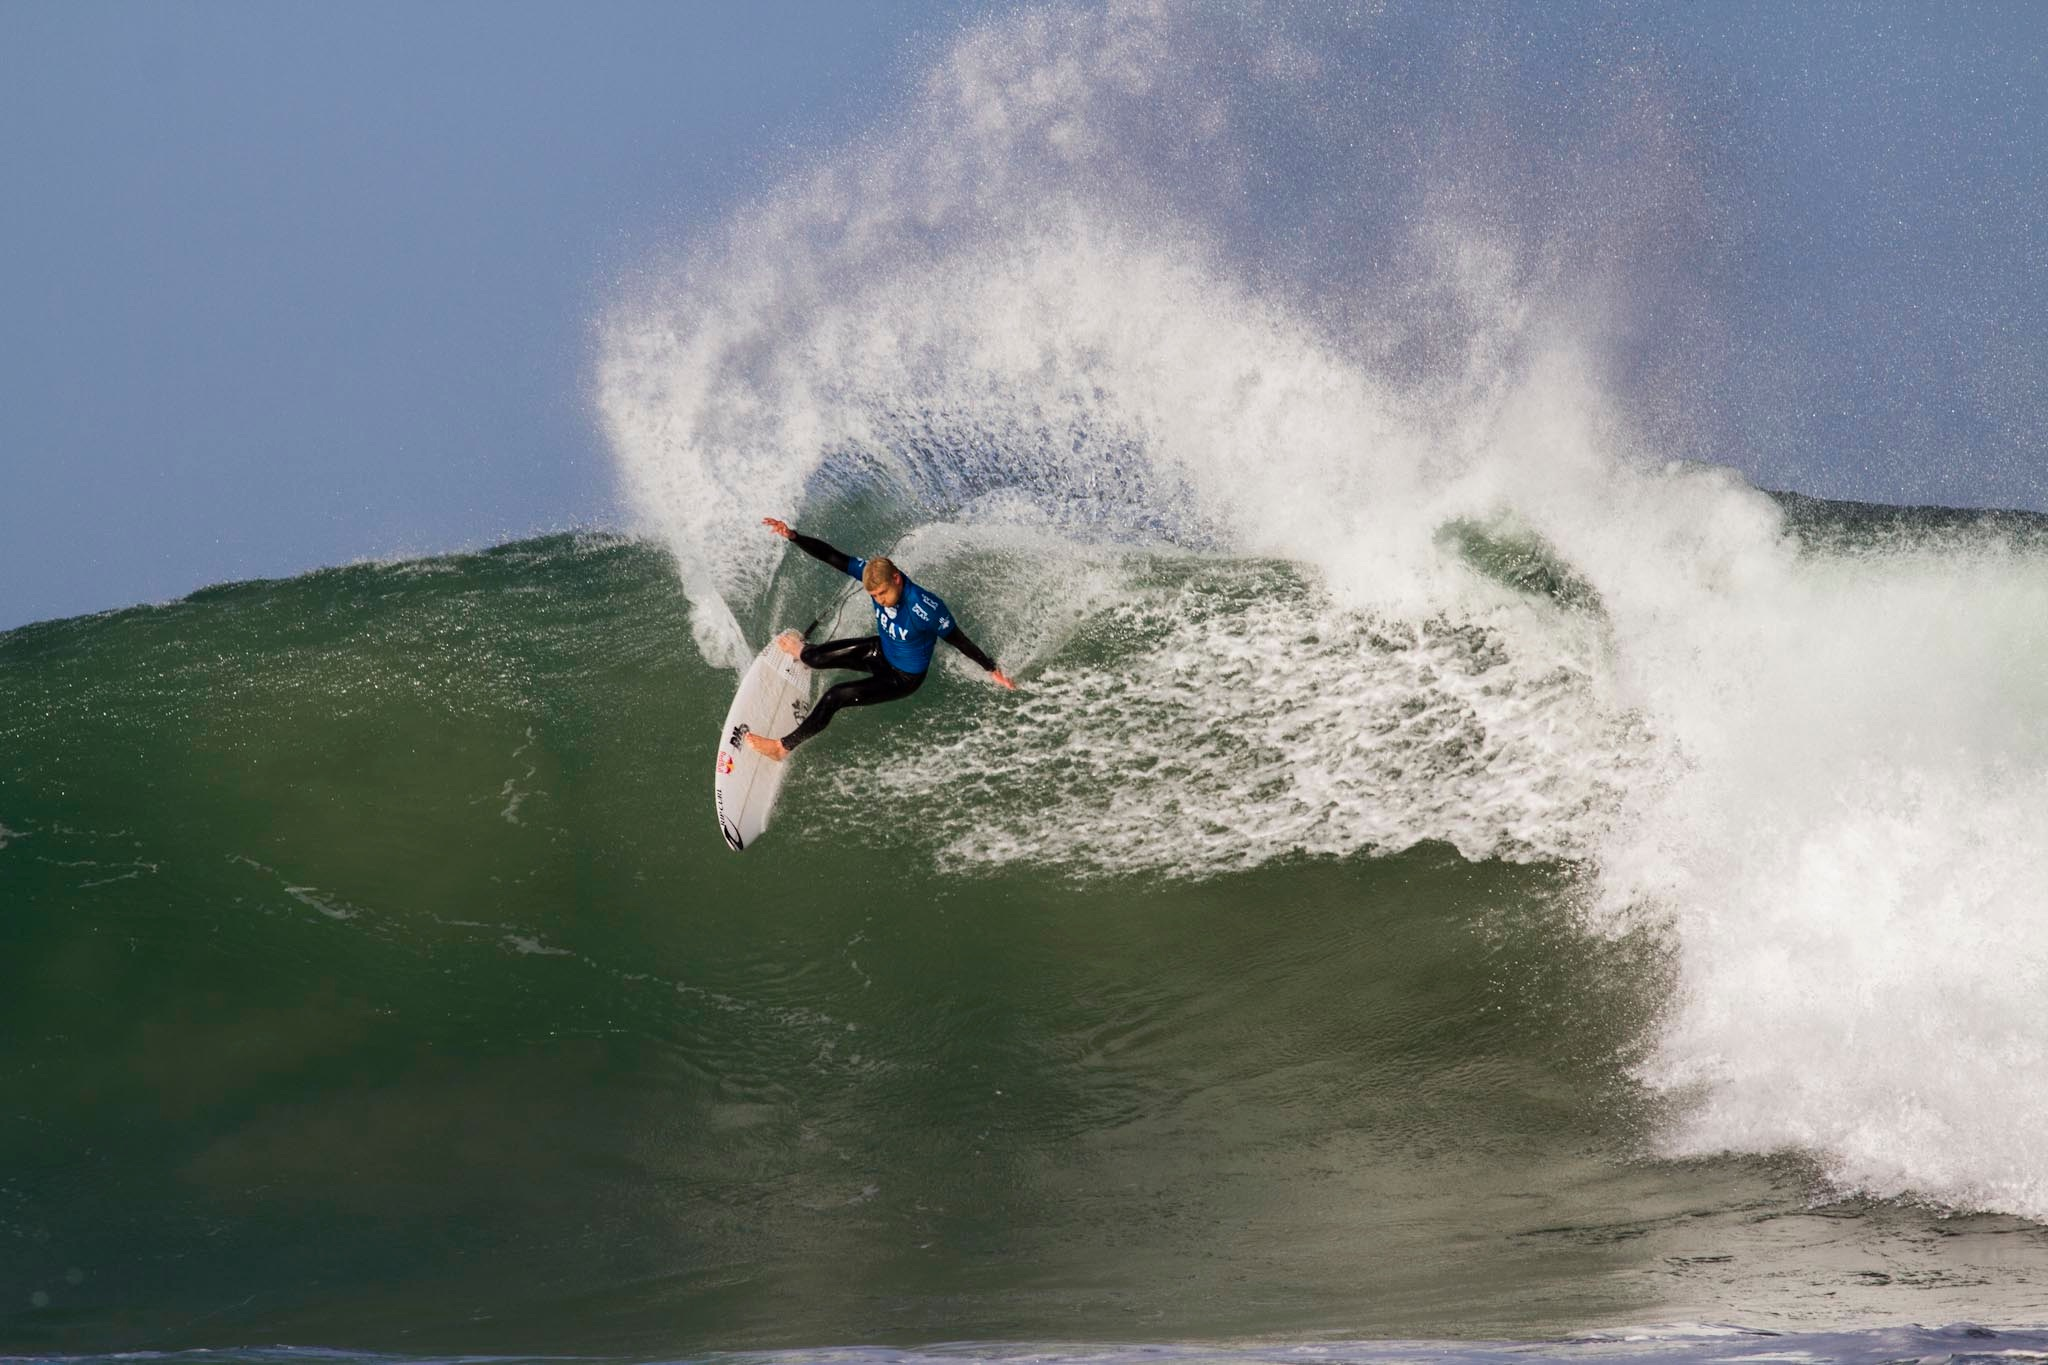 Mick Fanning win the J Bay Open of Surfing